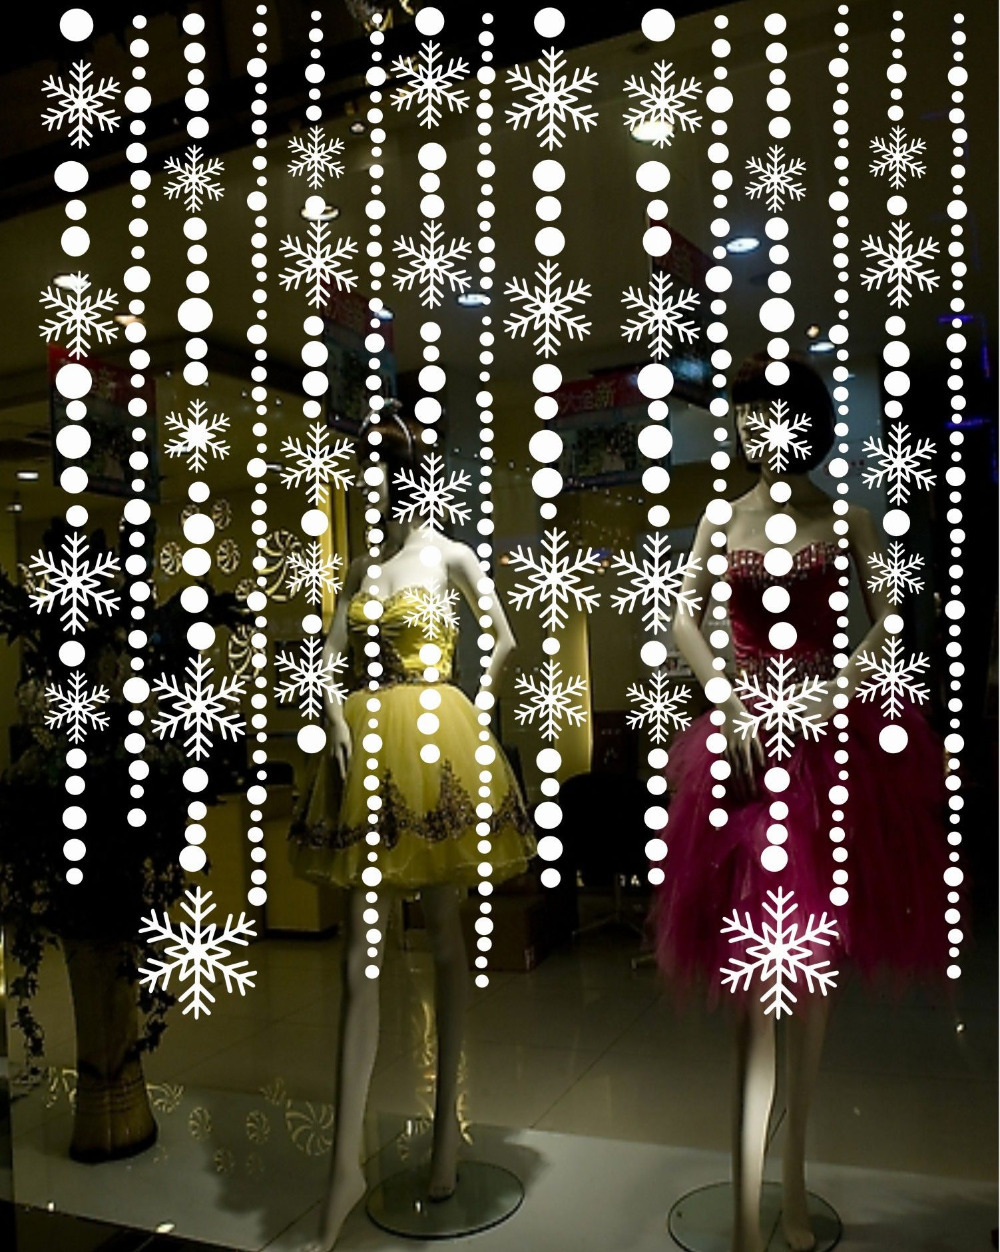 Aliexpress com buy christmas snowflake decals amp stickers bead curtain for doors window glass